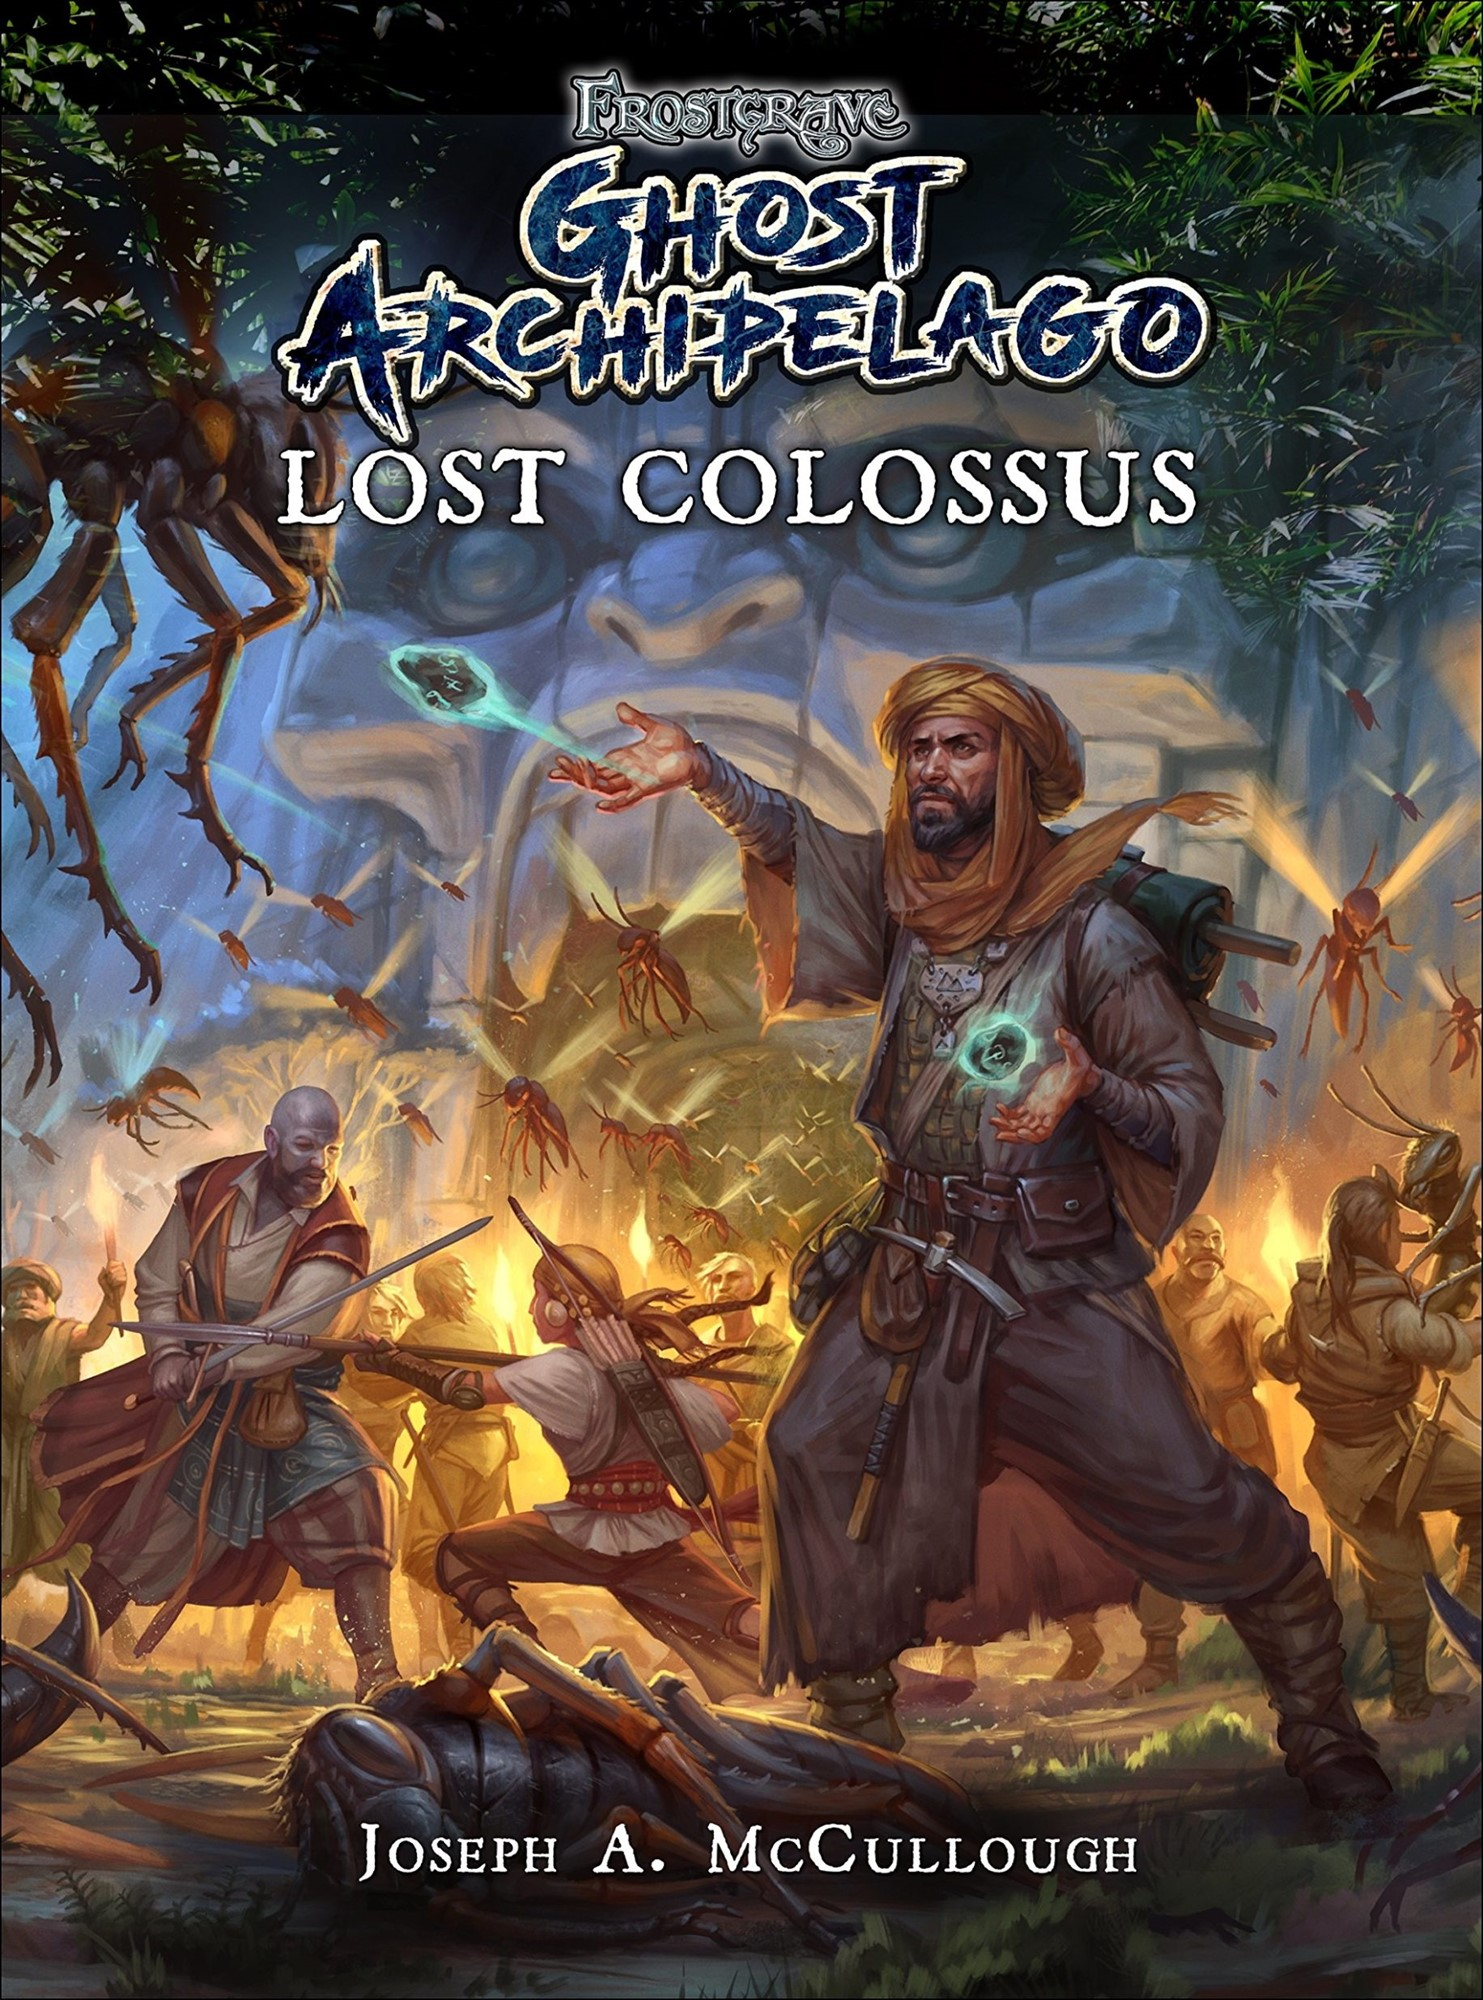 Browse Fantasy Miniatures Atomic Empire Ninja Division Painting Cerci Speed Circuit Frostgrave Ghost Archipelago Lost Colossus By Osprey Graphics